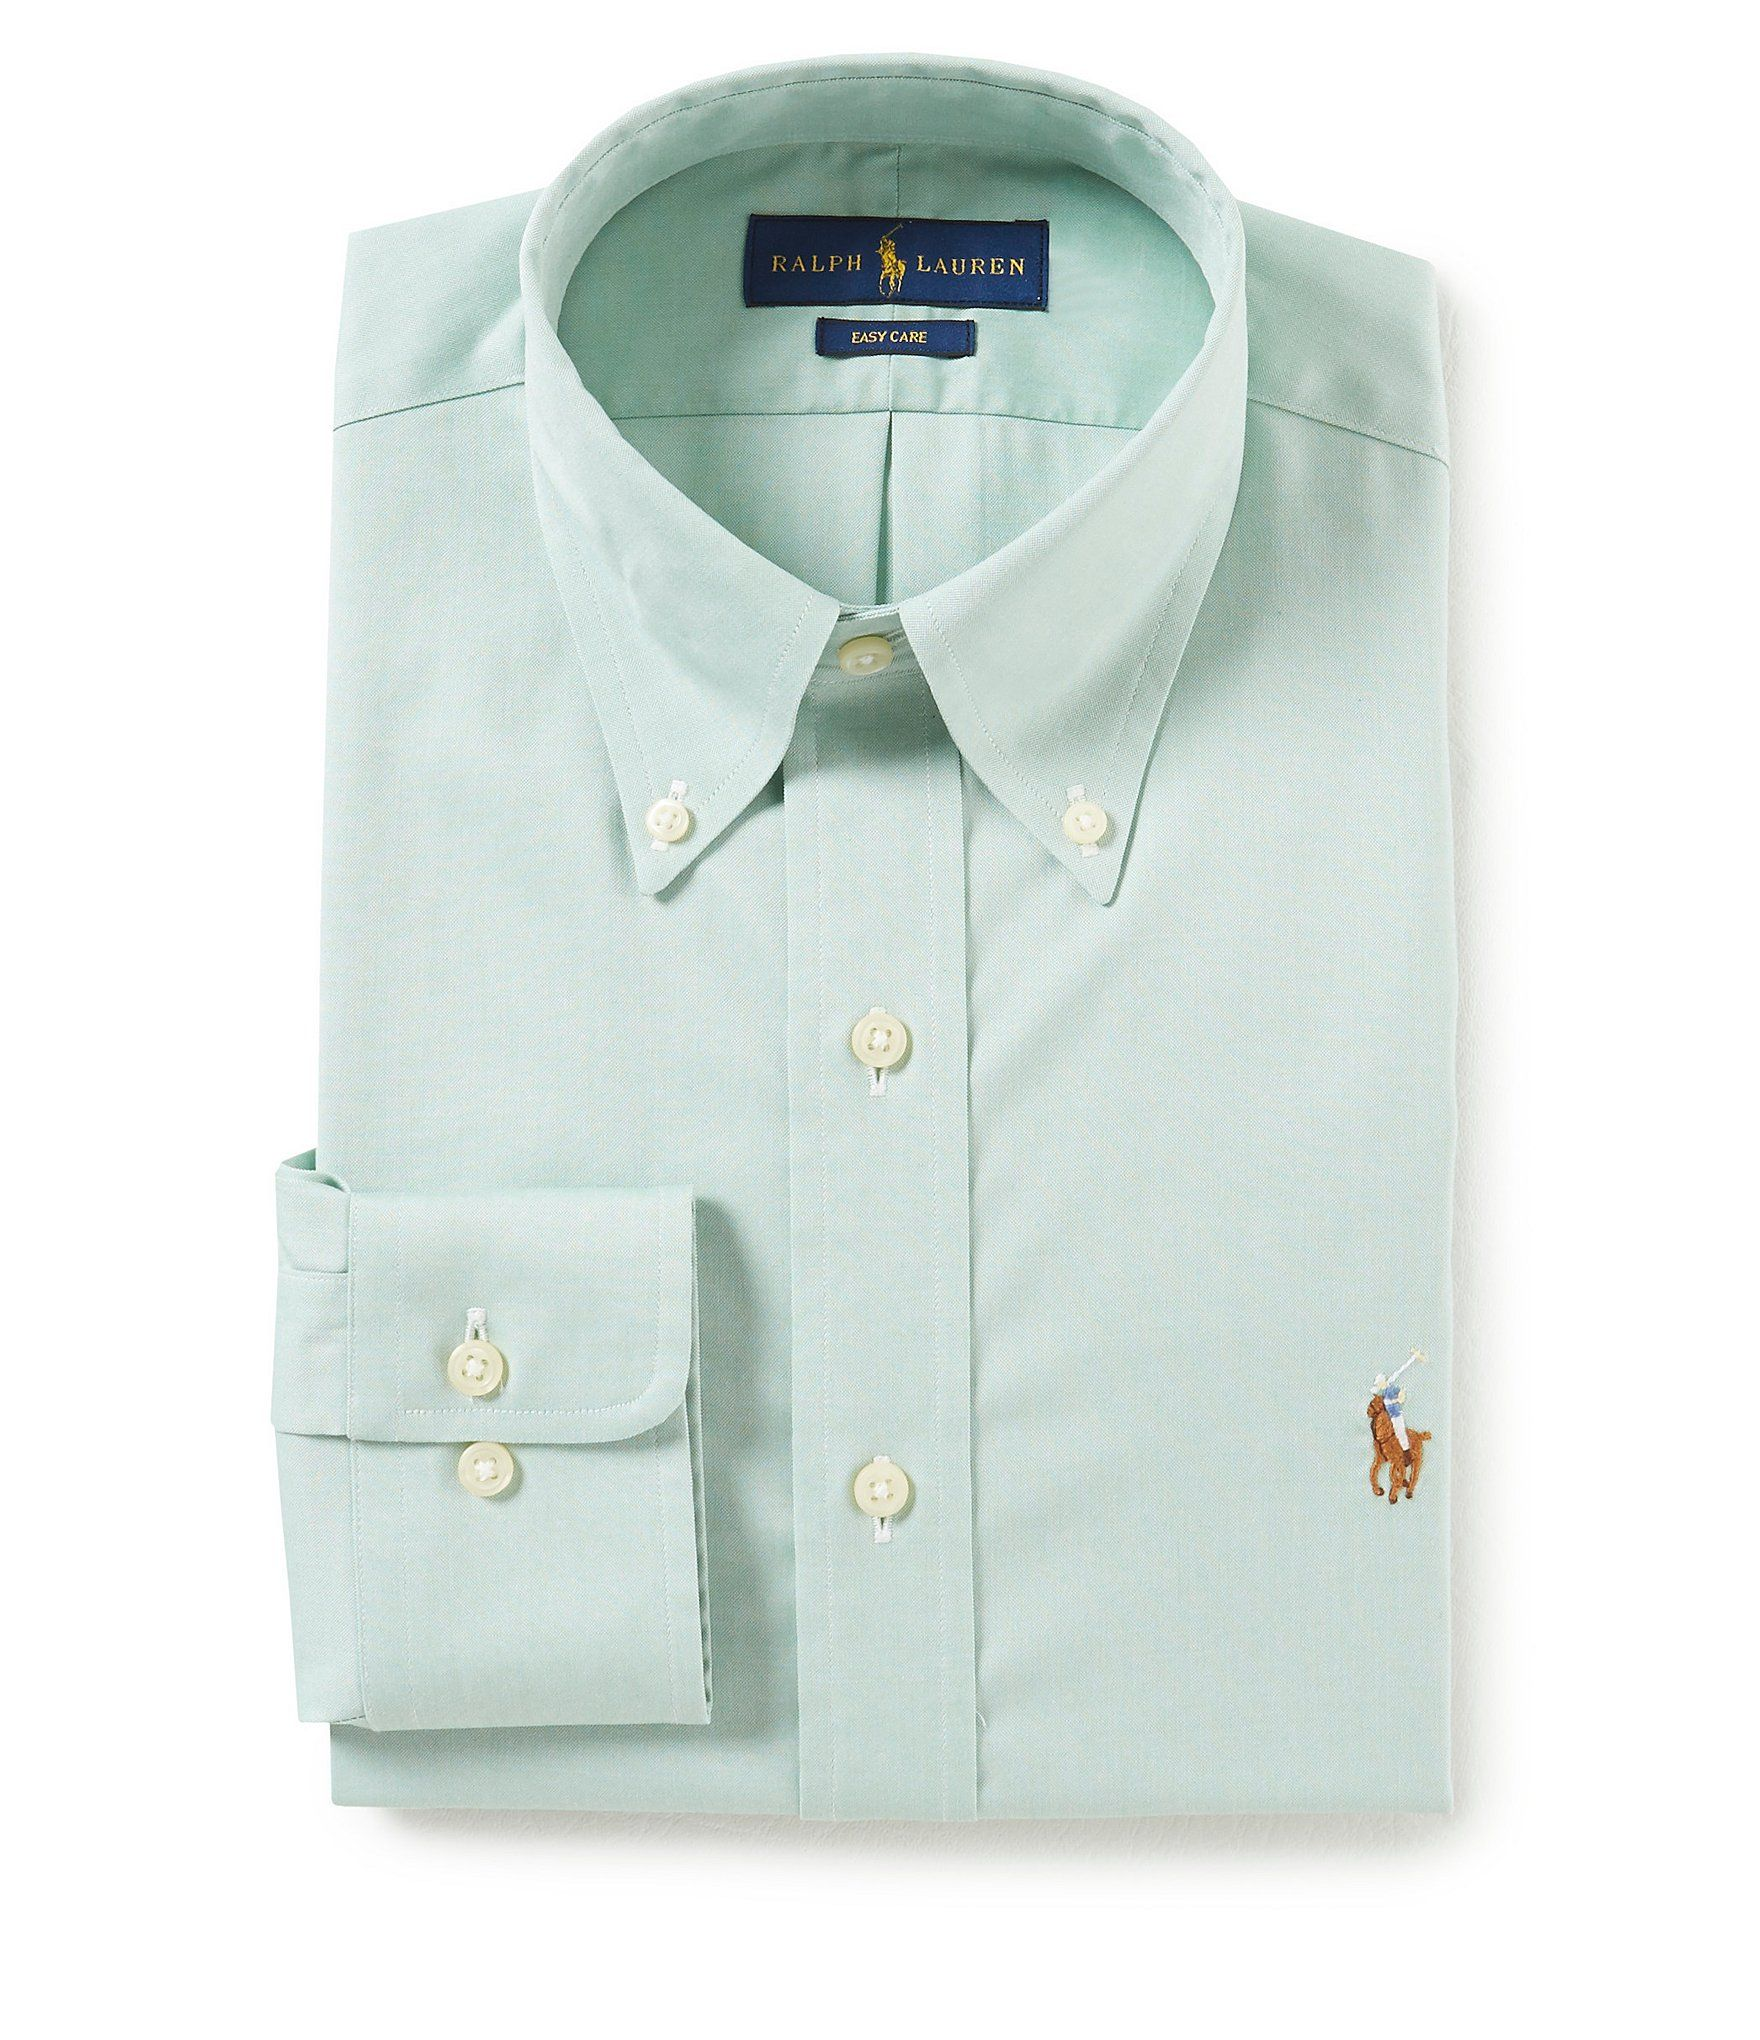 Shop for Polo Ralph Lauren Easy Care Standard Fit Button-Down Collar Solid  Oxford Dress Shirt at Dillards.com. Visit Dillards.com to find clothing 144448e8222